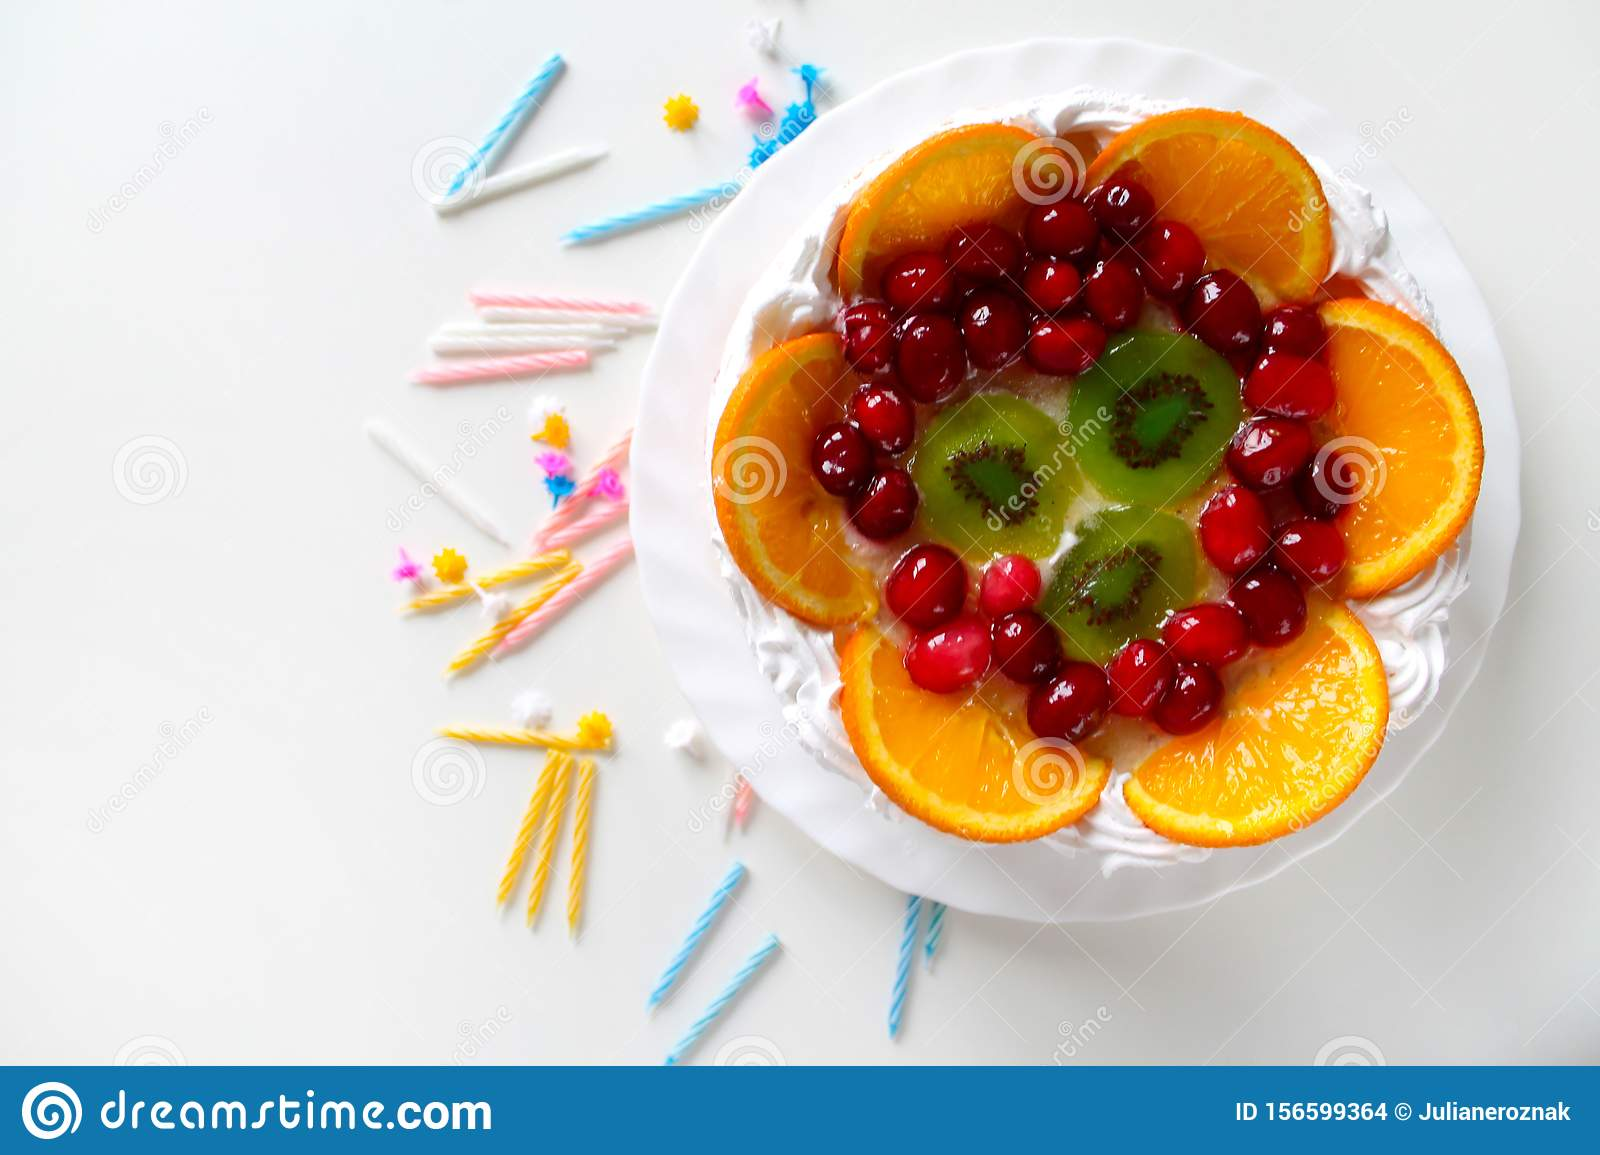 Sweet tasty cake with cream, fresh fruit and jelly. Twisted candles scattered around